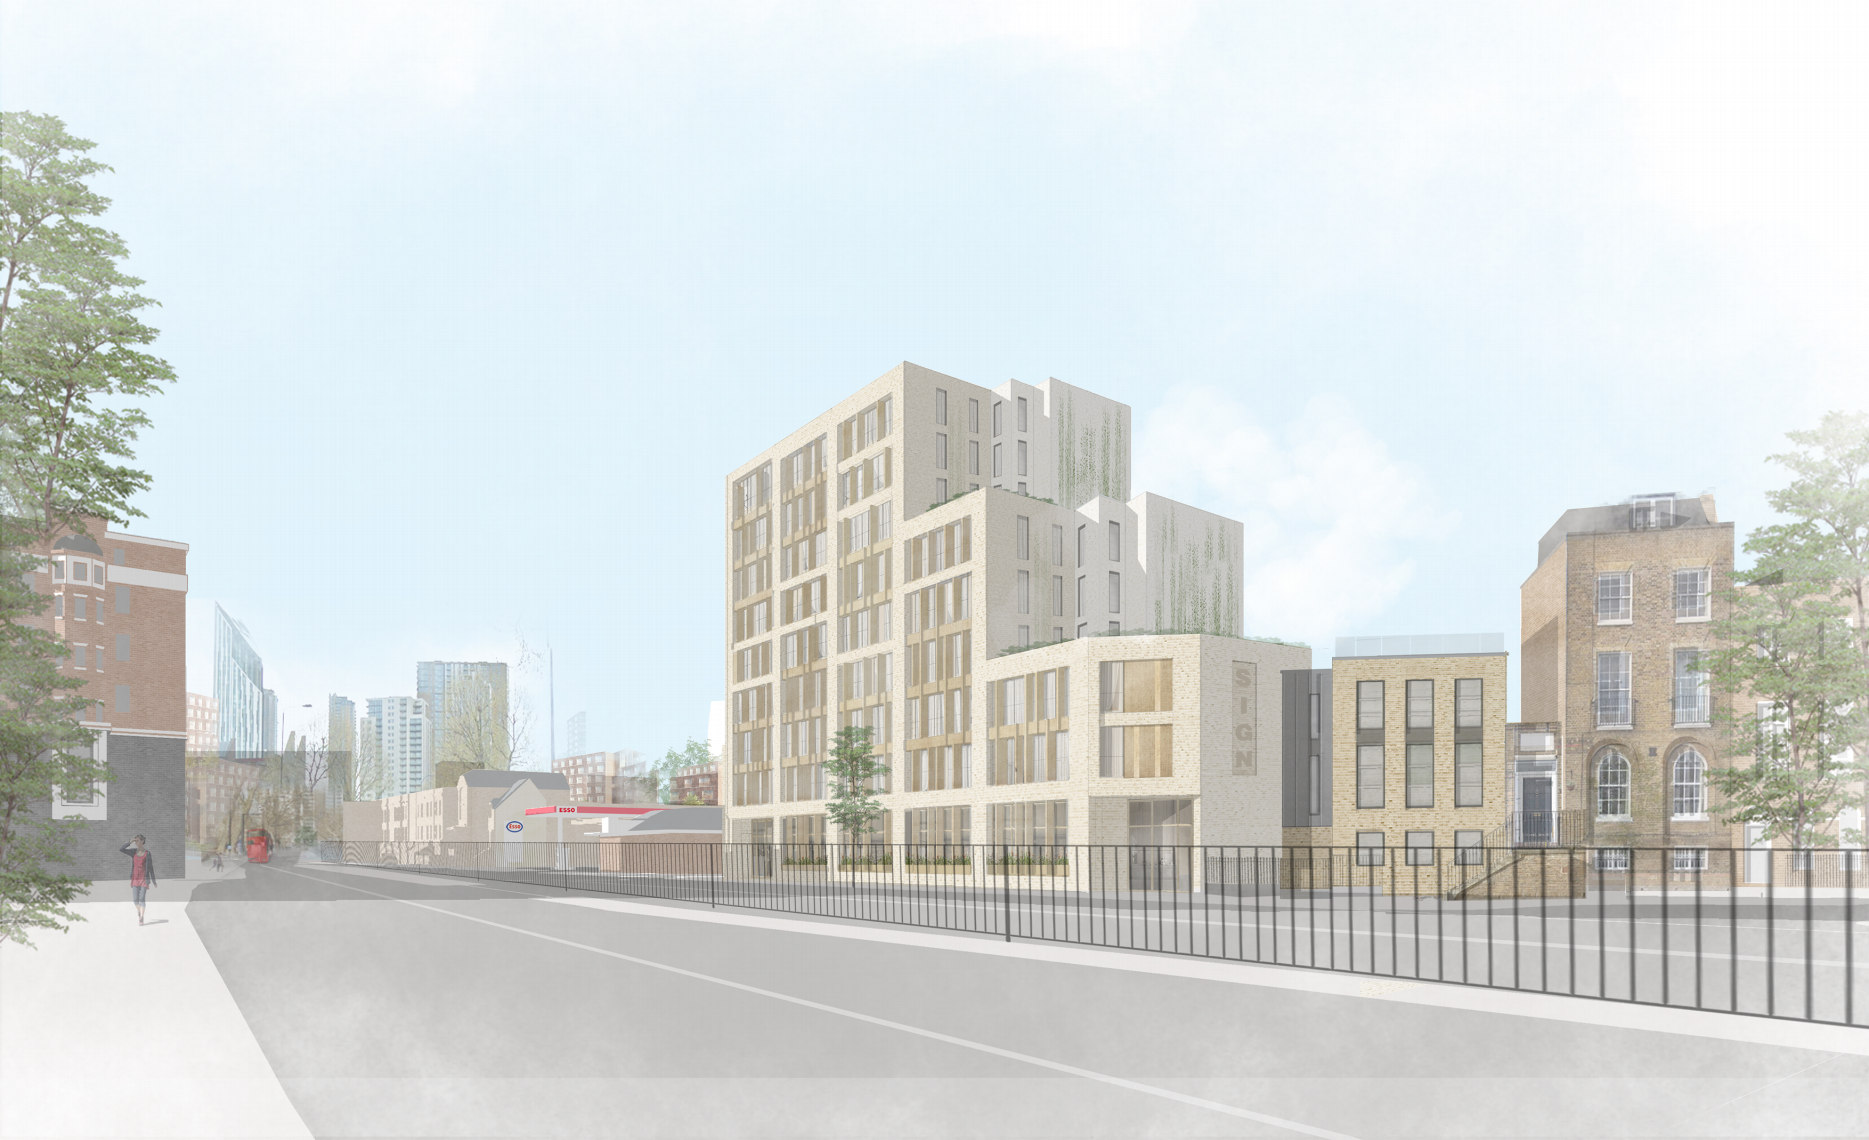 200-room 'mid-market' hotel proposed for New Kent Road